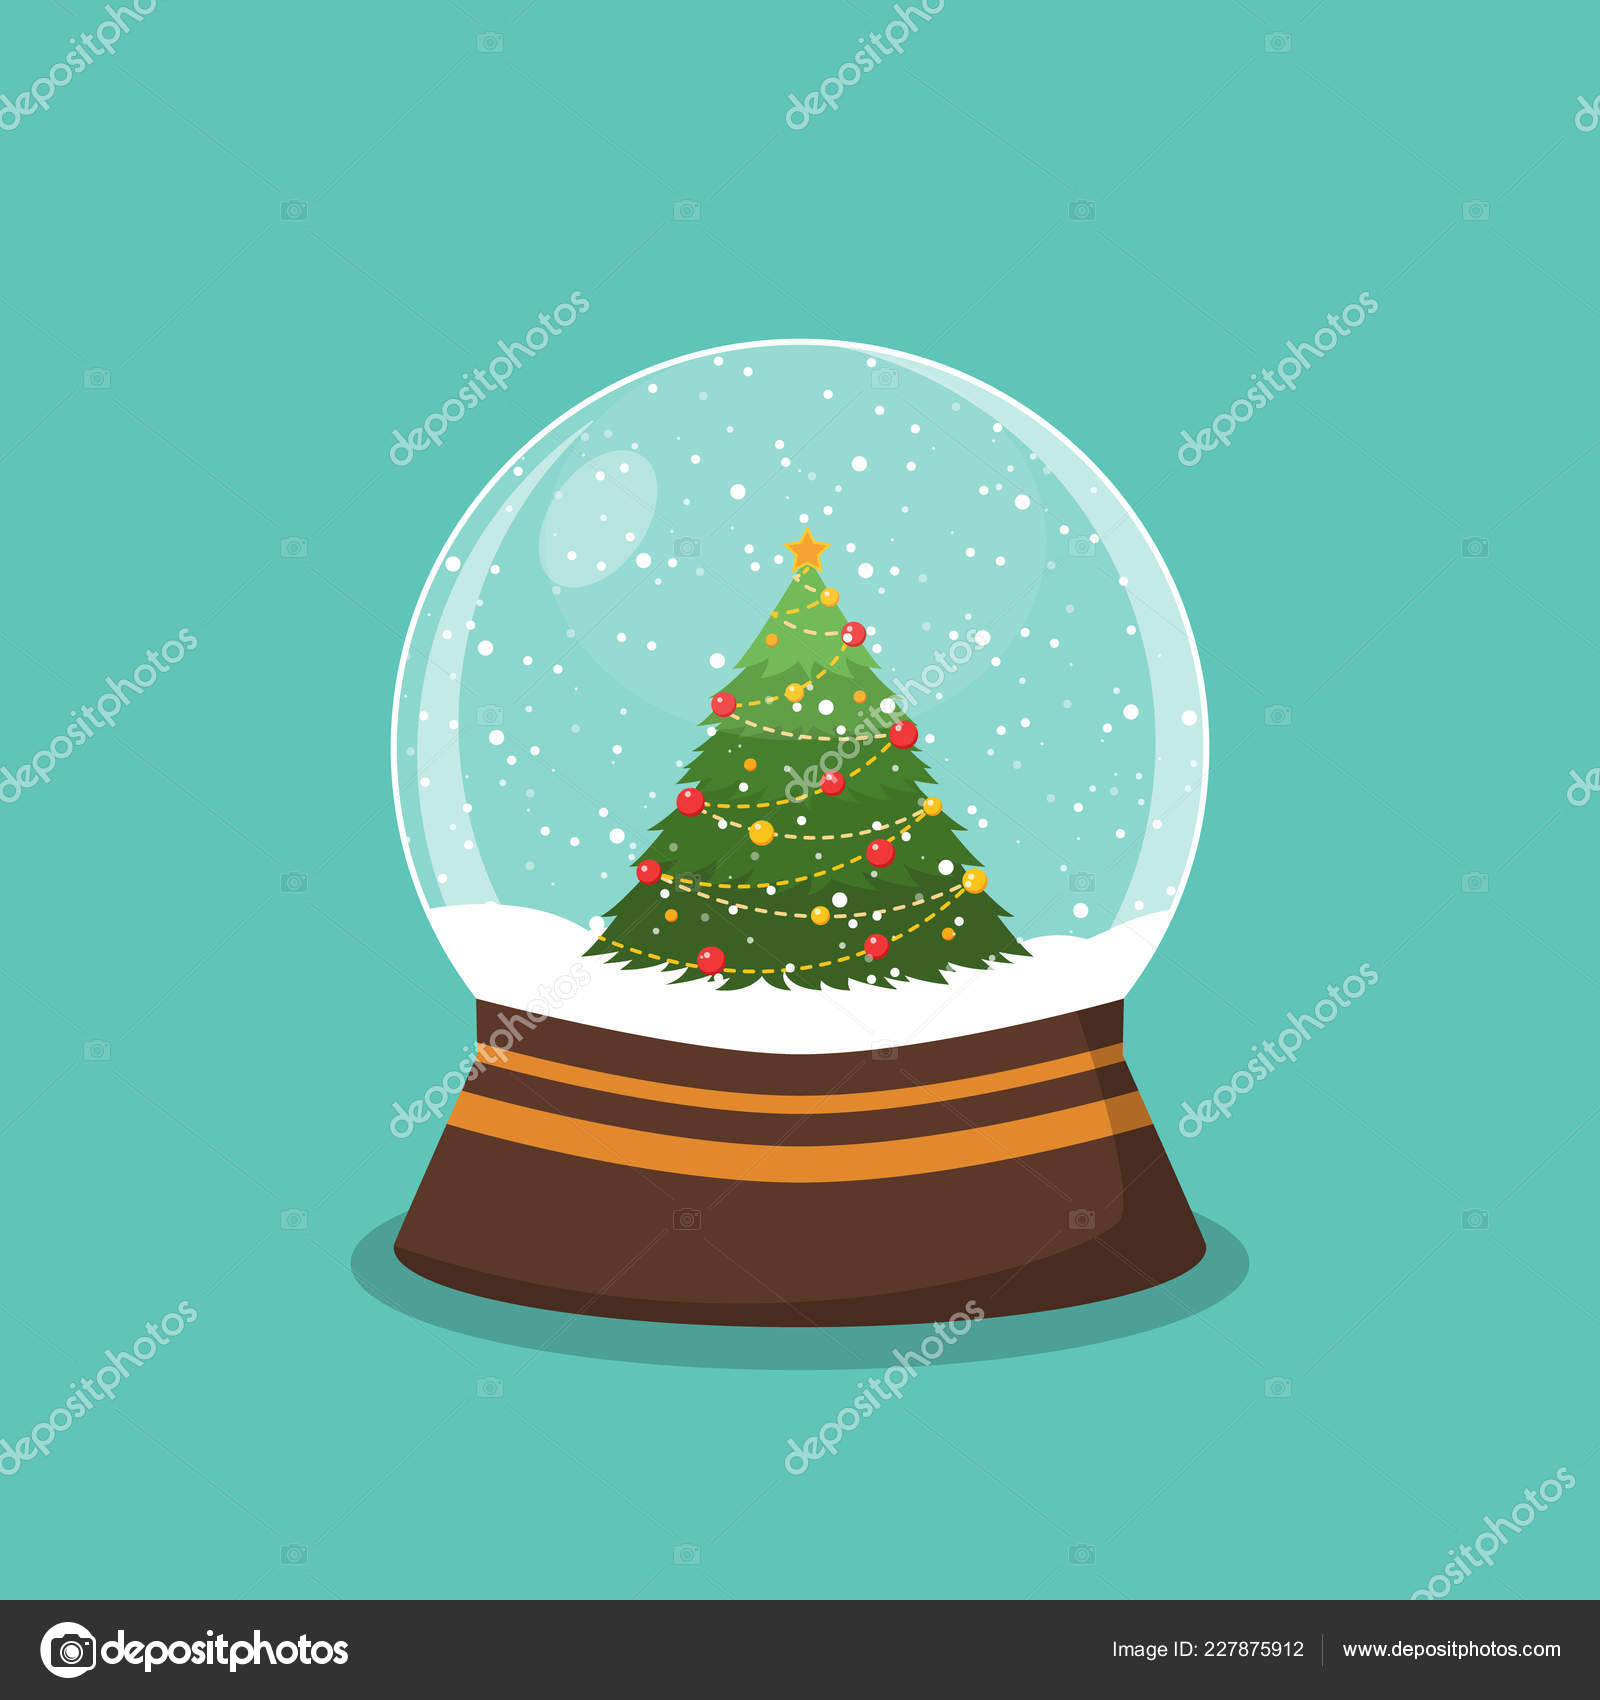 Christmas In Evergreen Snow Globe.Christmas Ball With Snow And A Christmas Tree Snow Globe